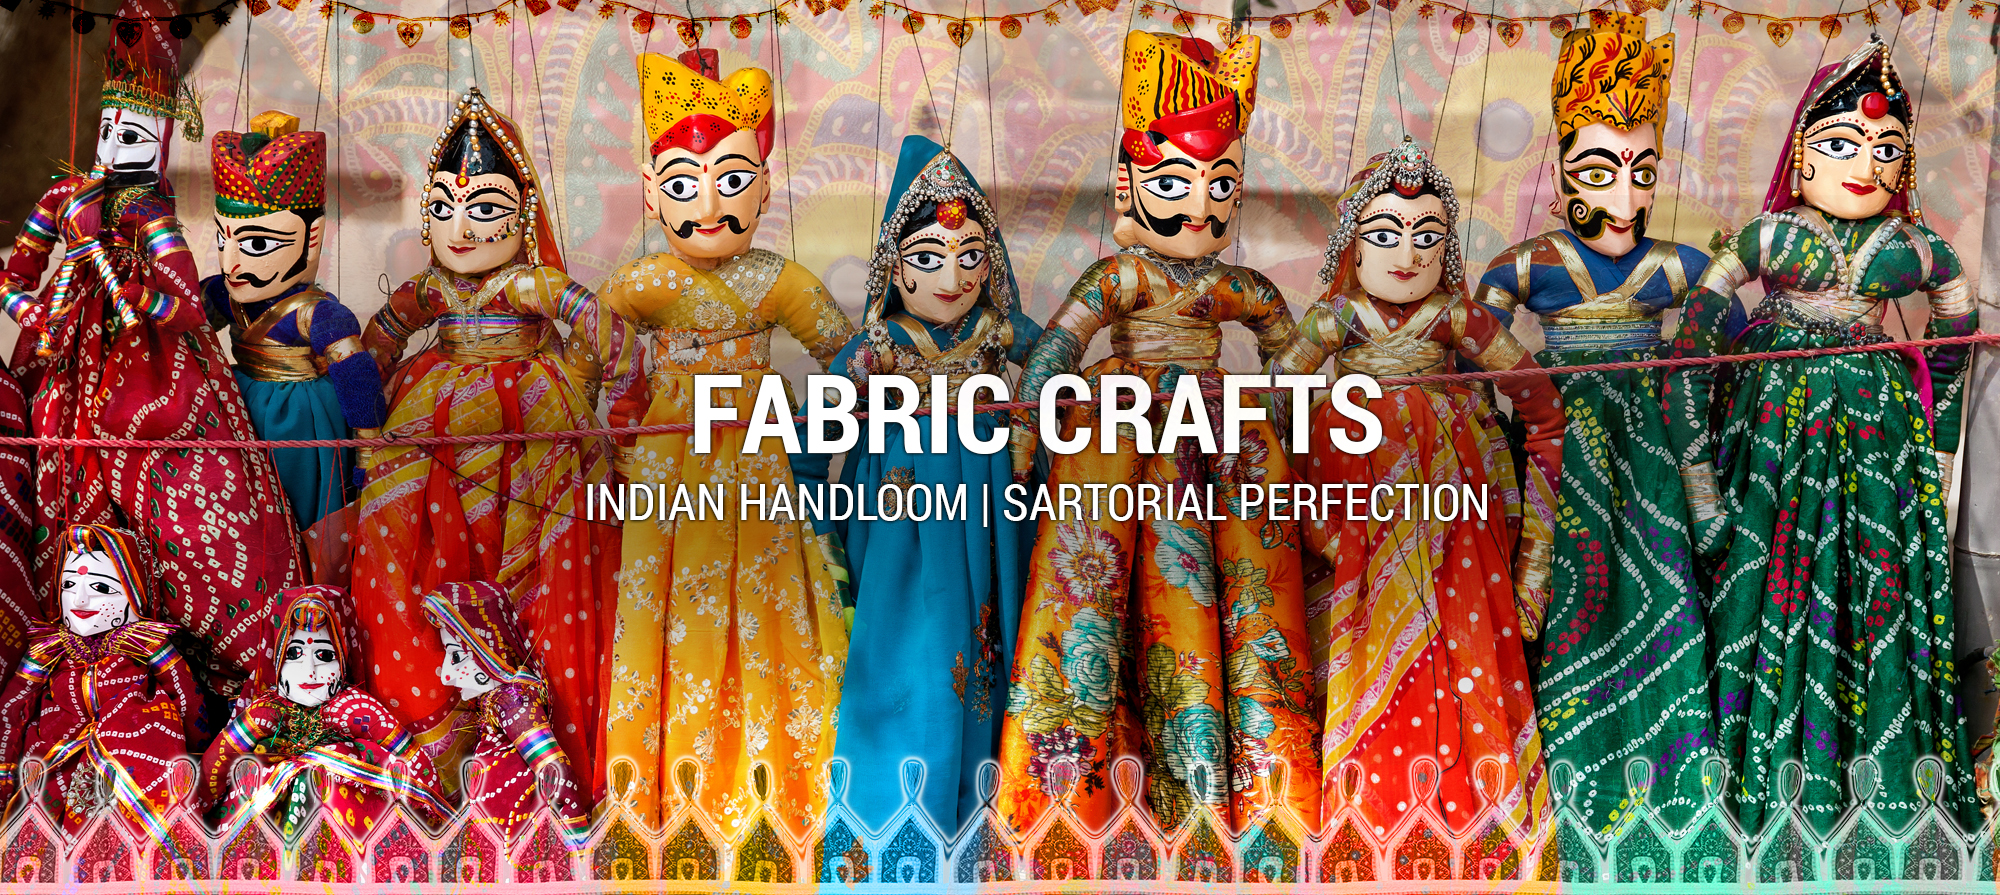 Glorious India - Fabric Crafts